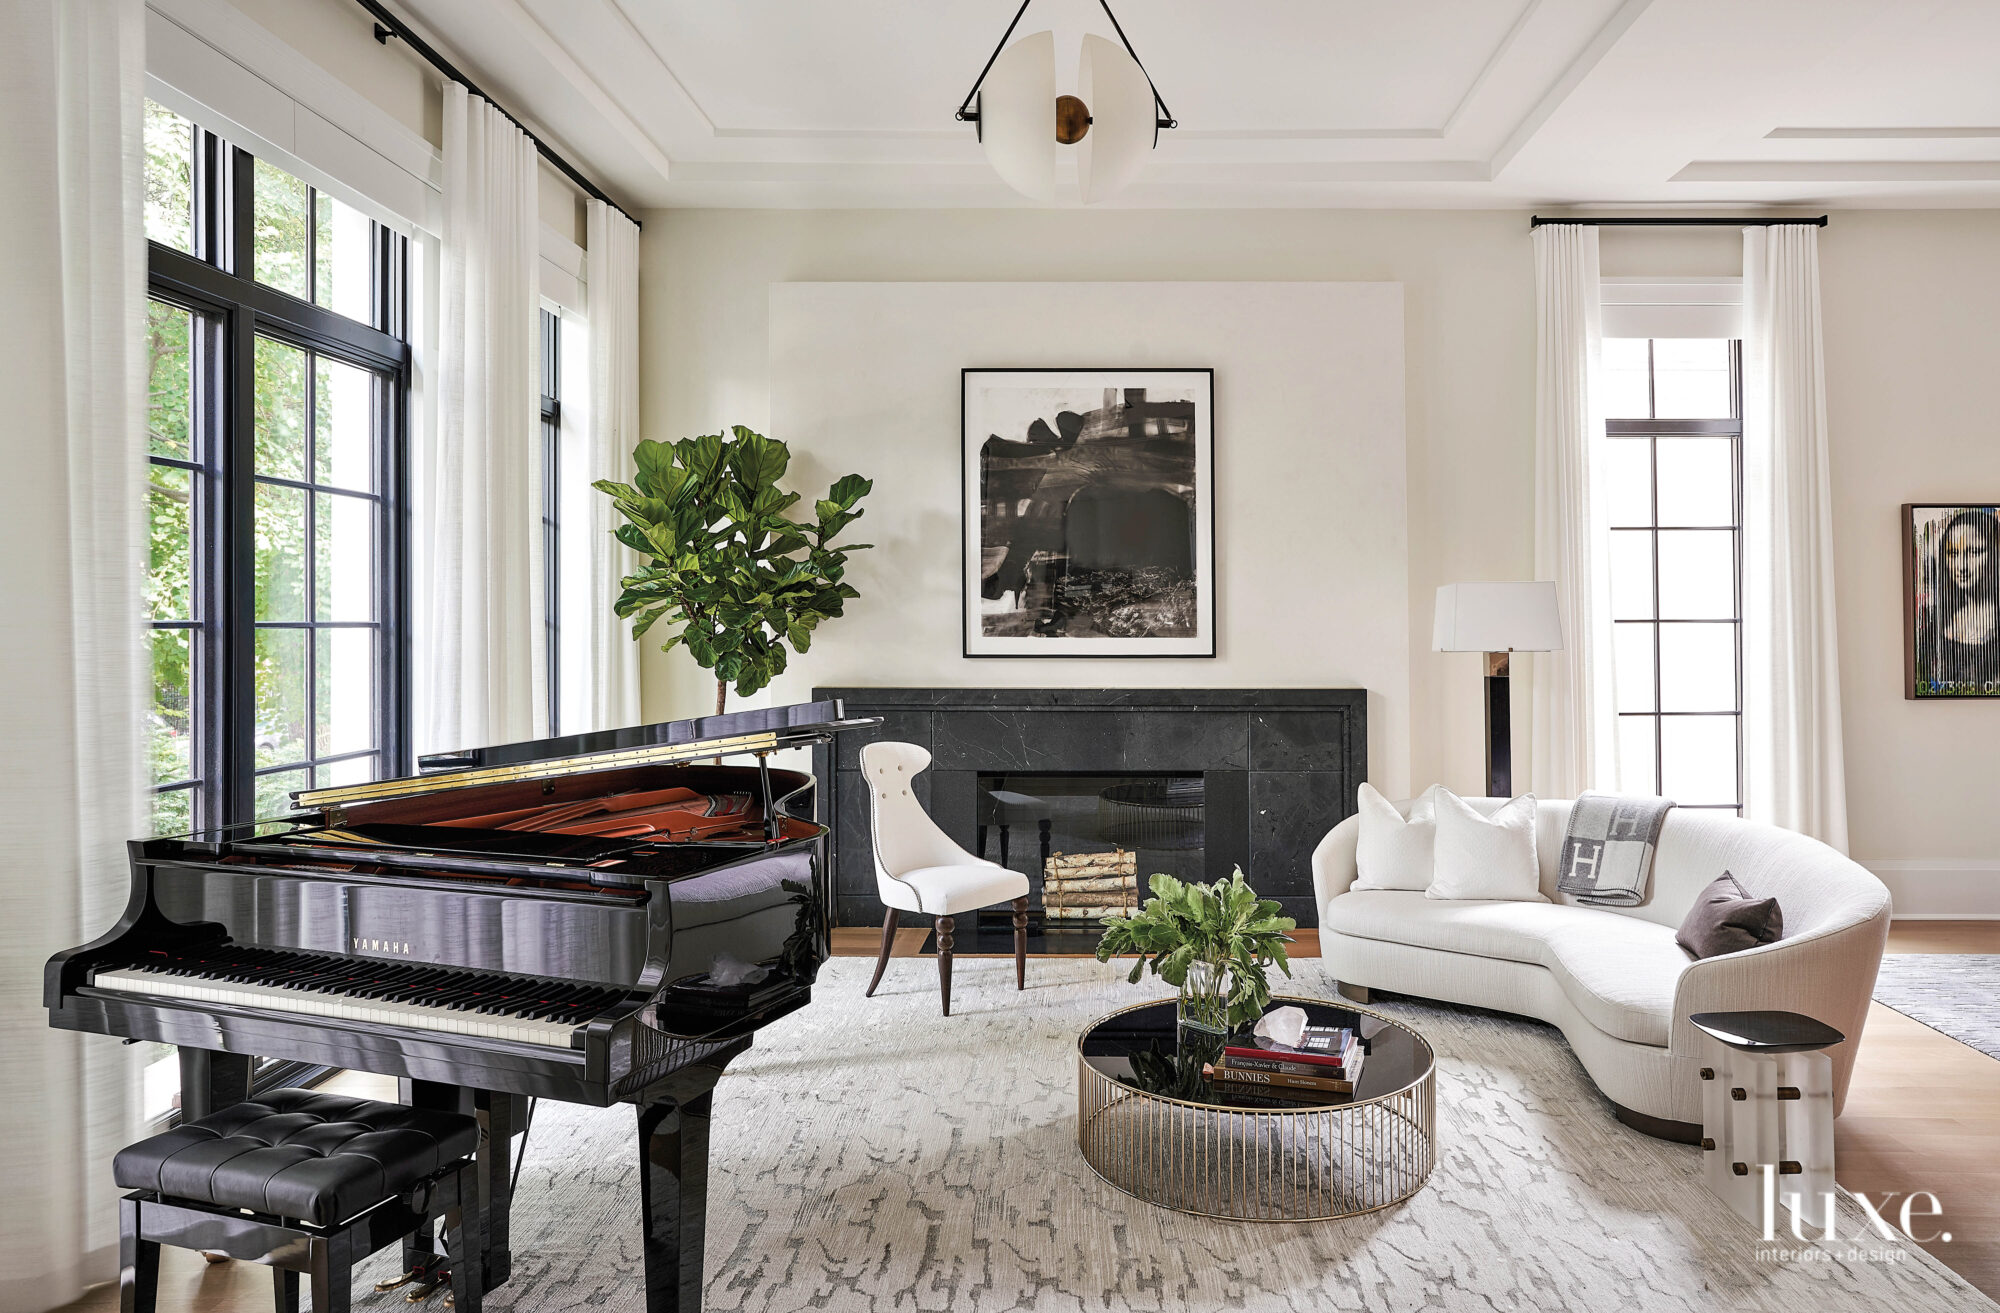 The living room has a a baby grand piano, a white curved sofa and black marble fireplace.